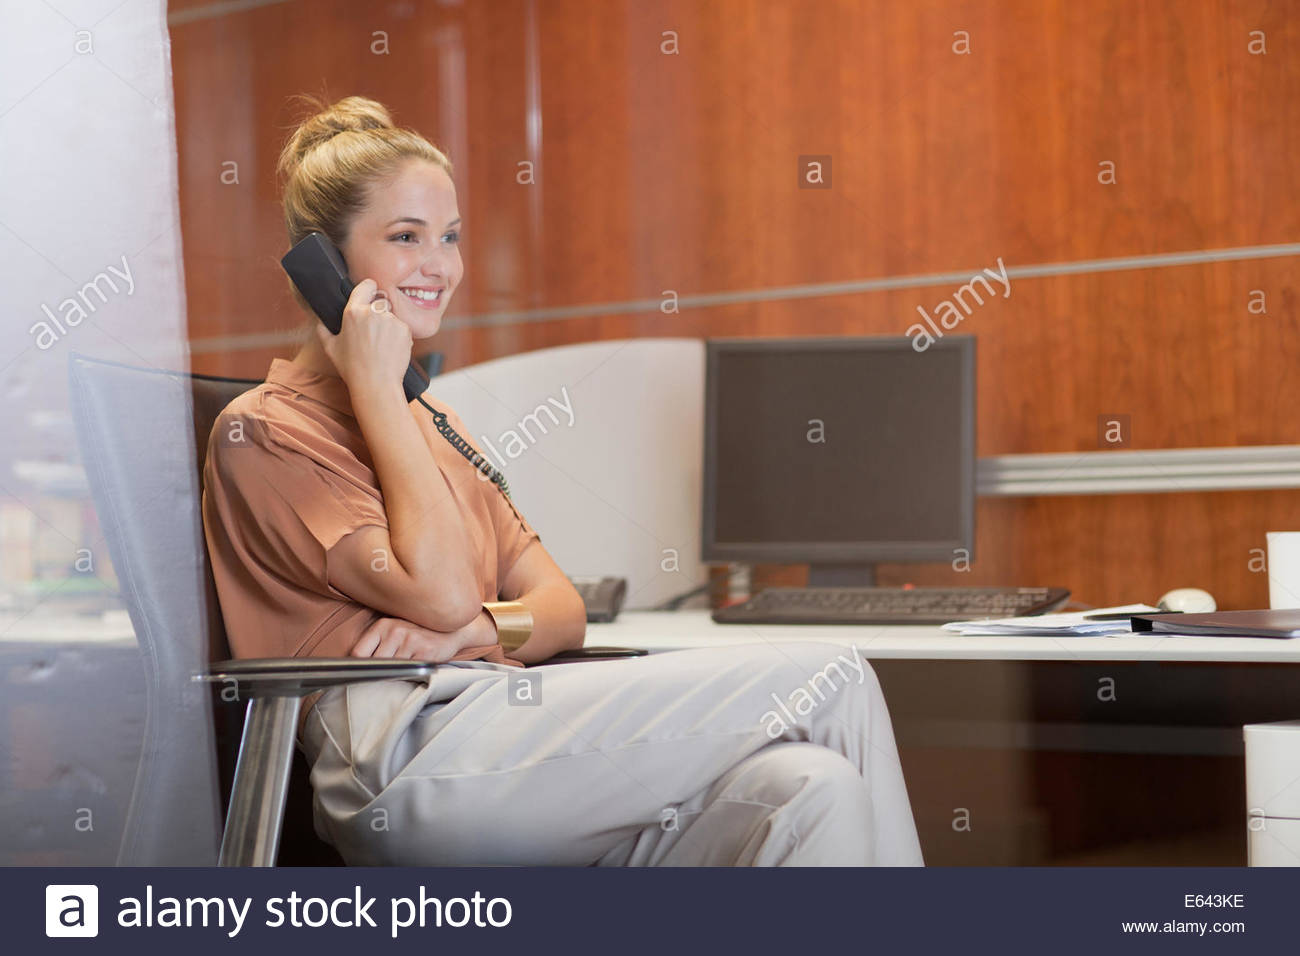 Smiling businesswoman talking on telephone in office - Stock Image